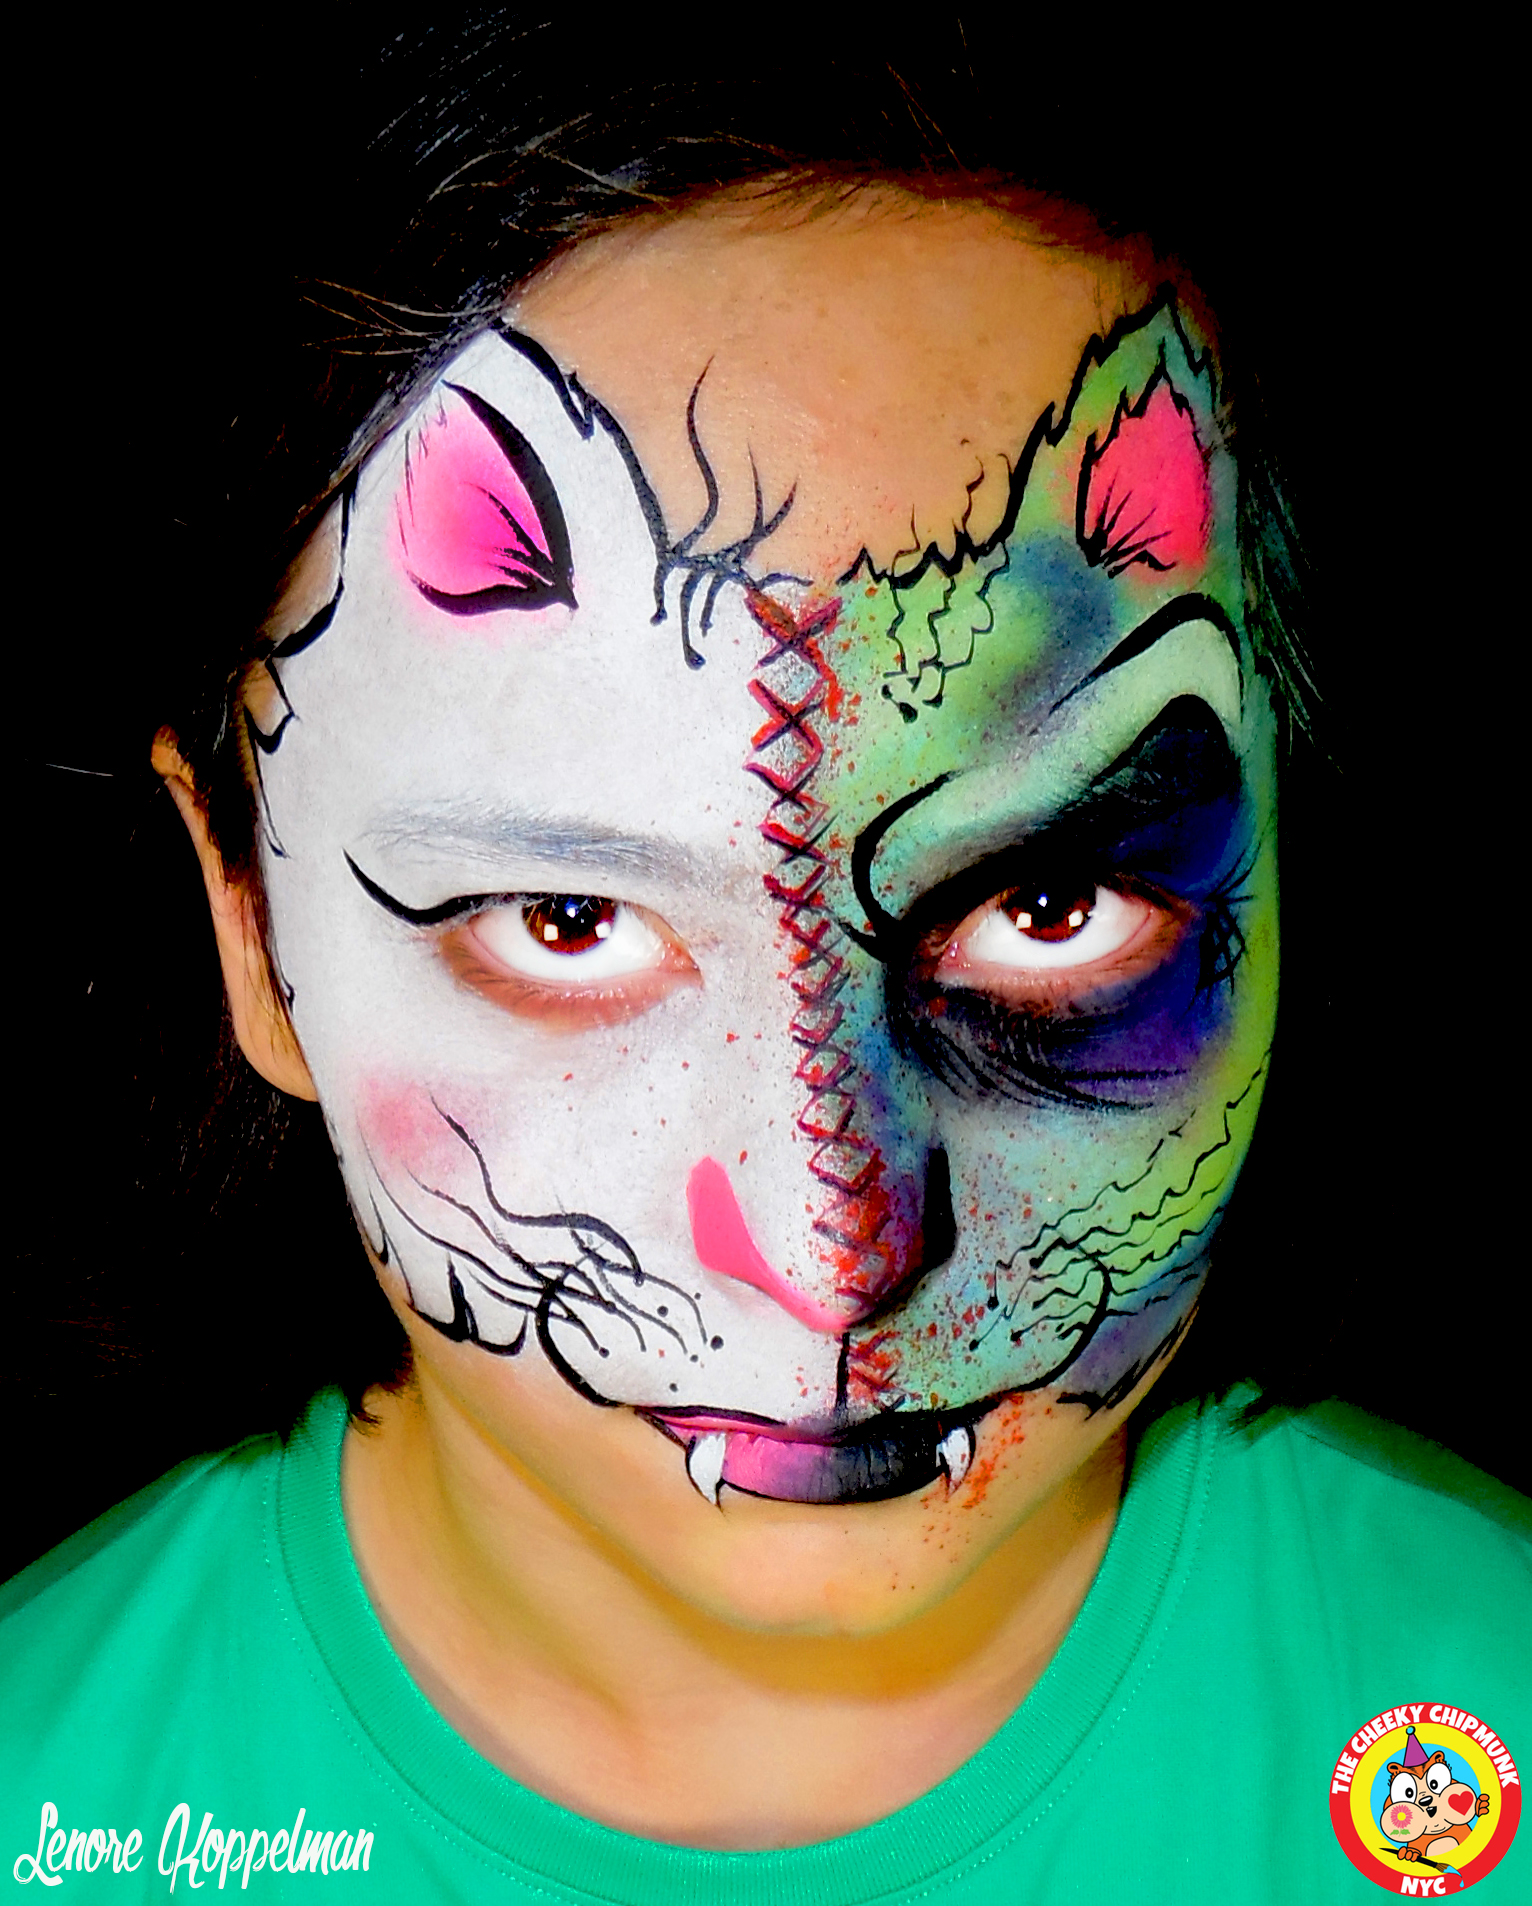 """Good Kitty! Bad Kitty!"" face painting by Lenore Koppelman aka ""The Cheeky Chipmunk"" in NYC"